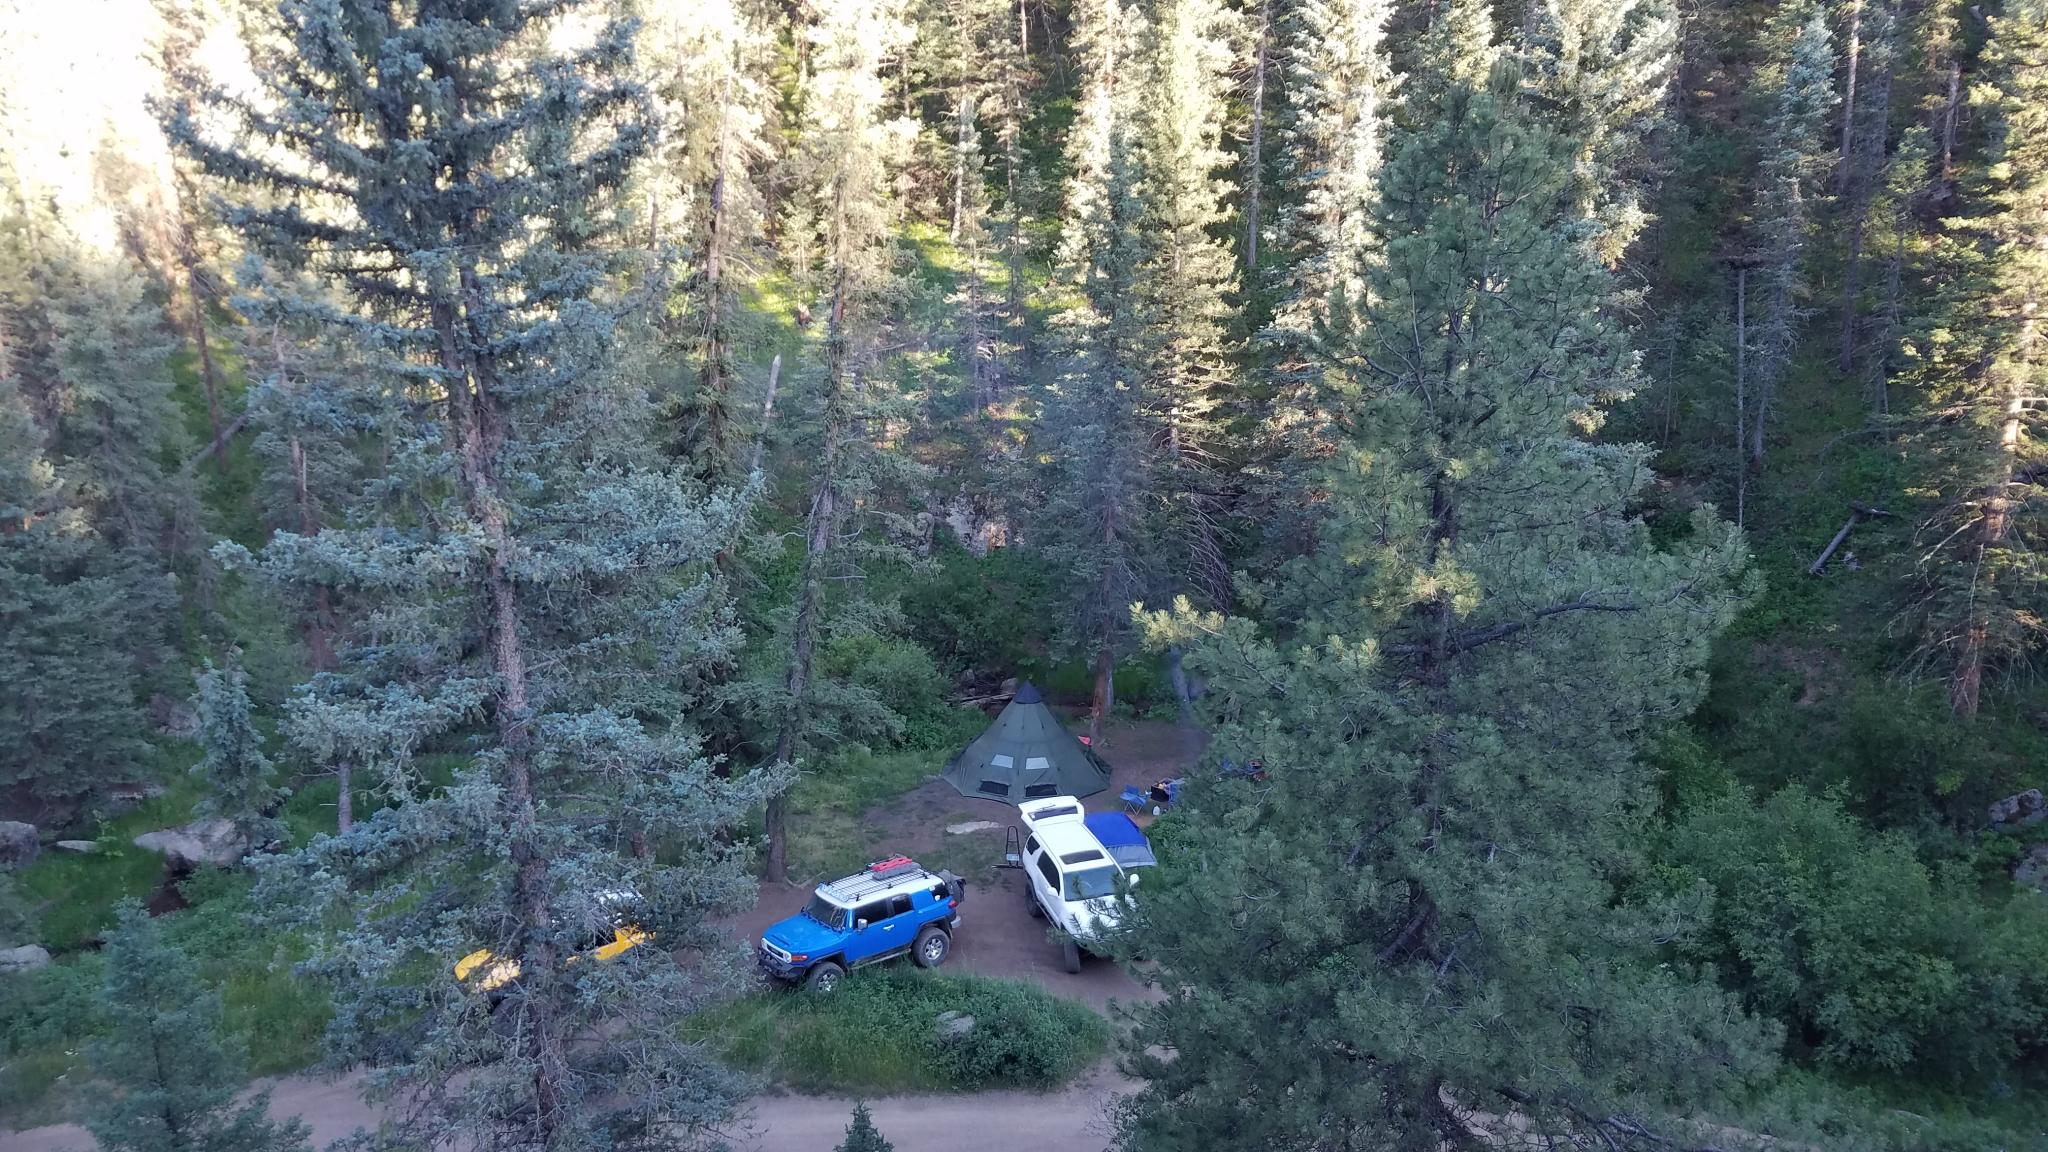 Let see your camping pics with the FJ..-20190718_192508.jpg